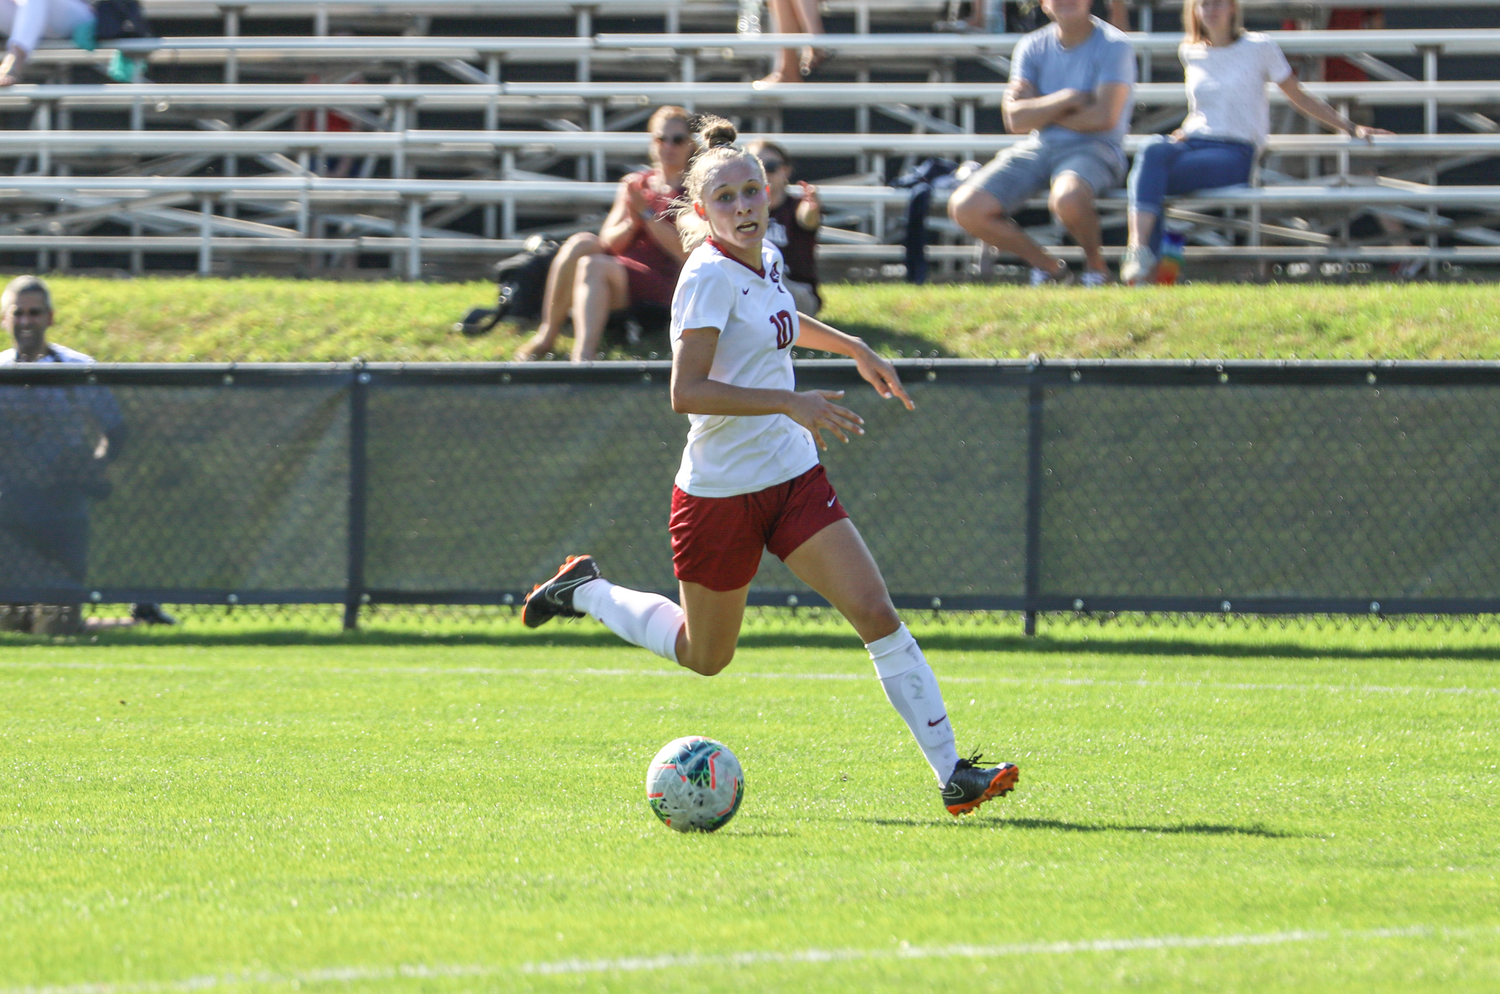 Freshman Angela Caloia approaches the net for the Crimson. The first-year was one of two players who scored in the team's loss to Brown Saturday.